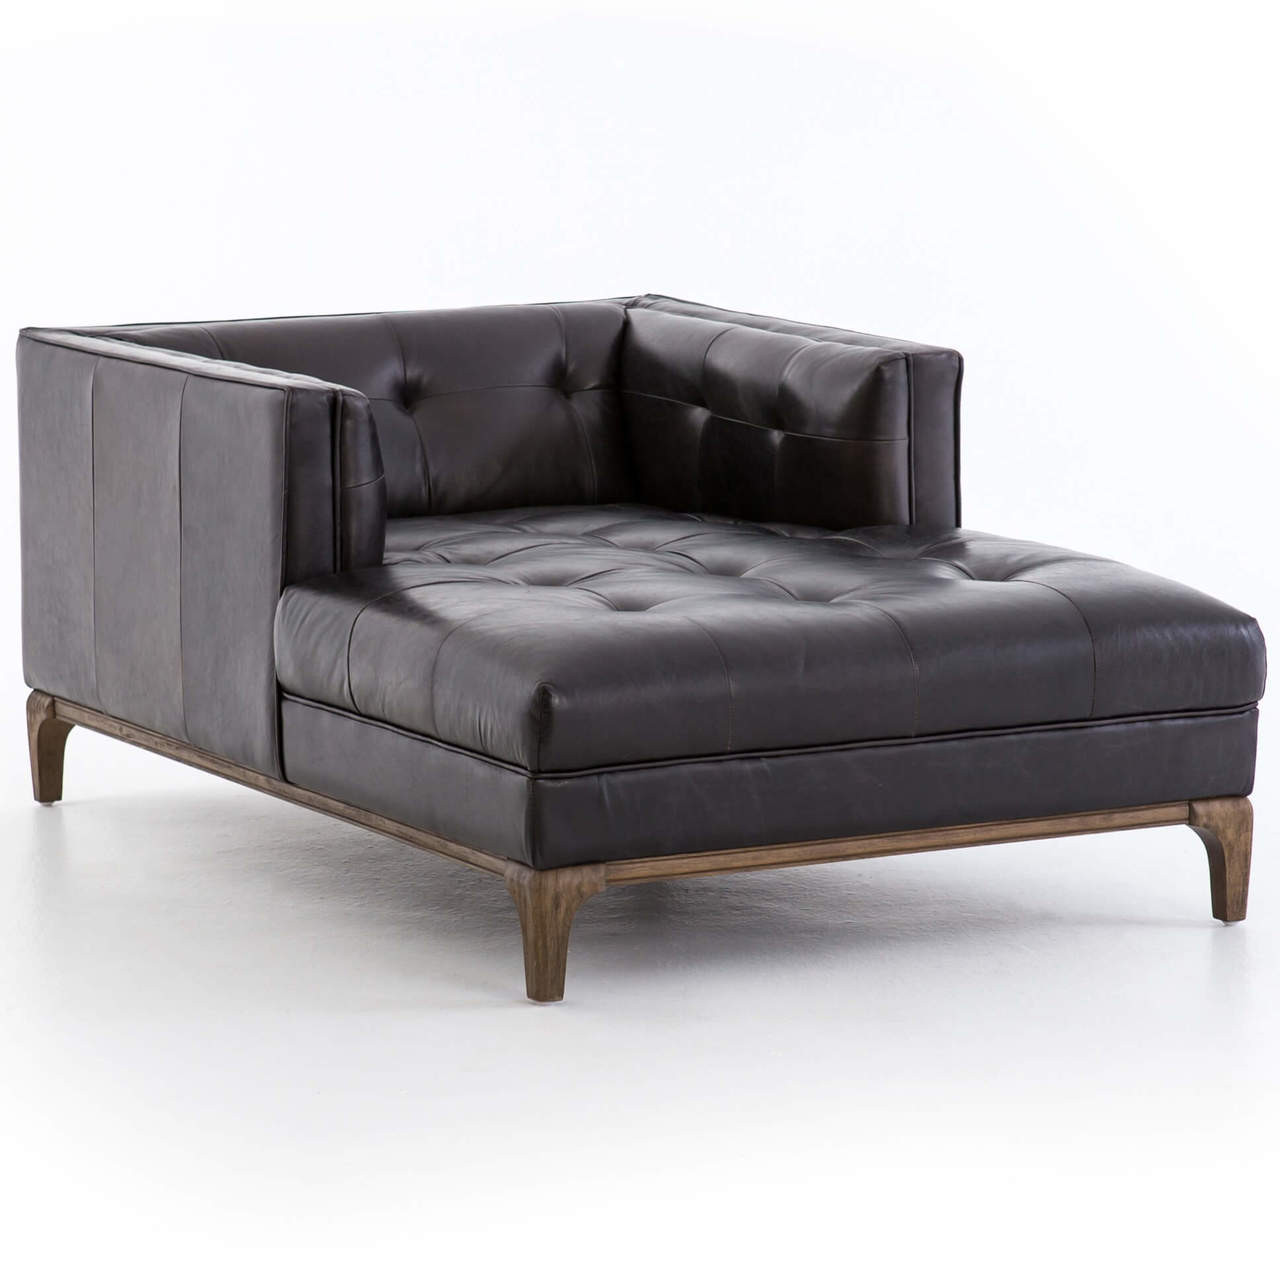 Dylan Mid Century Modern Black Leather Chaise Lounge Zin Home